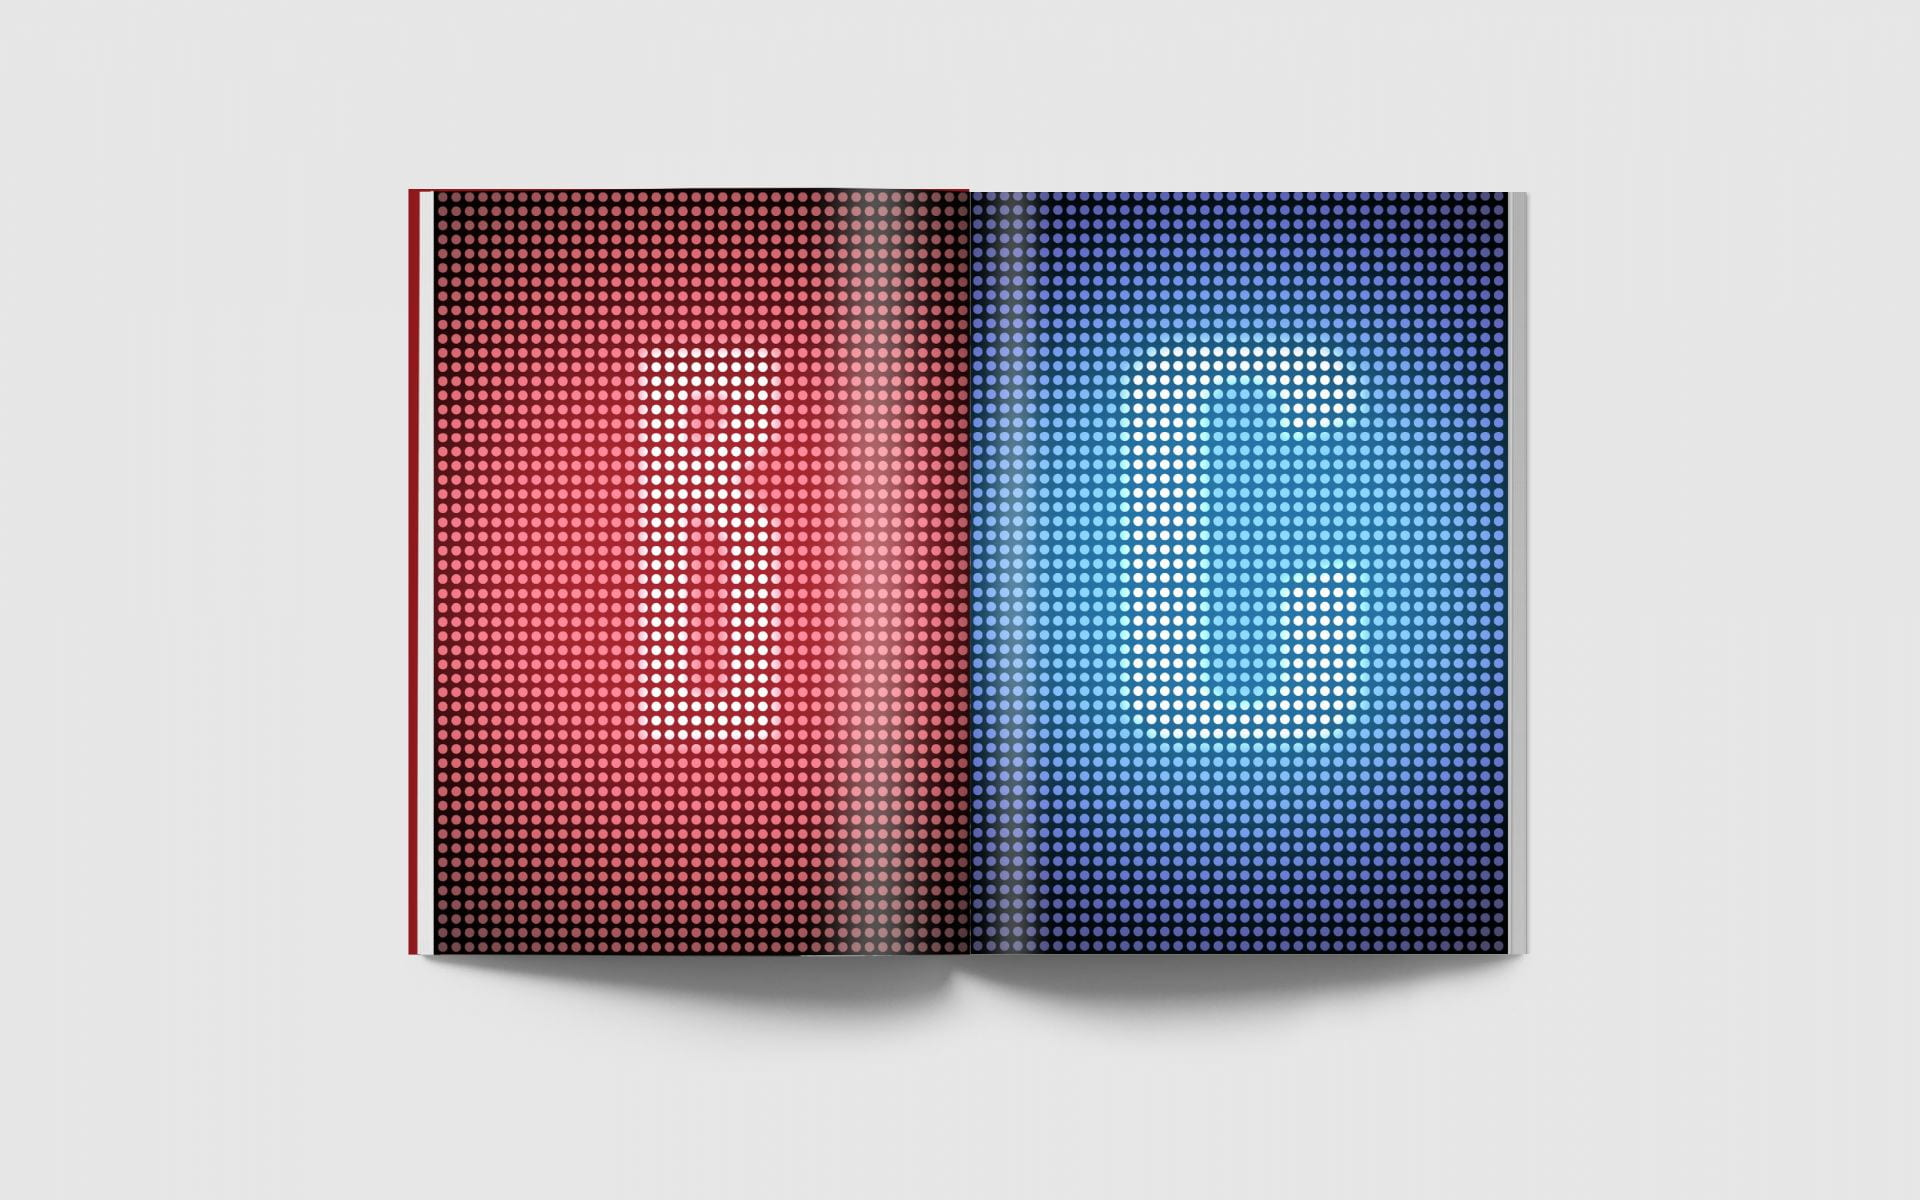 Two magazine pages, one with the letter 'B' on a neon-red background, the other with the letter 'C' against neon-blue.